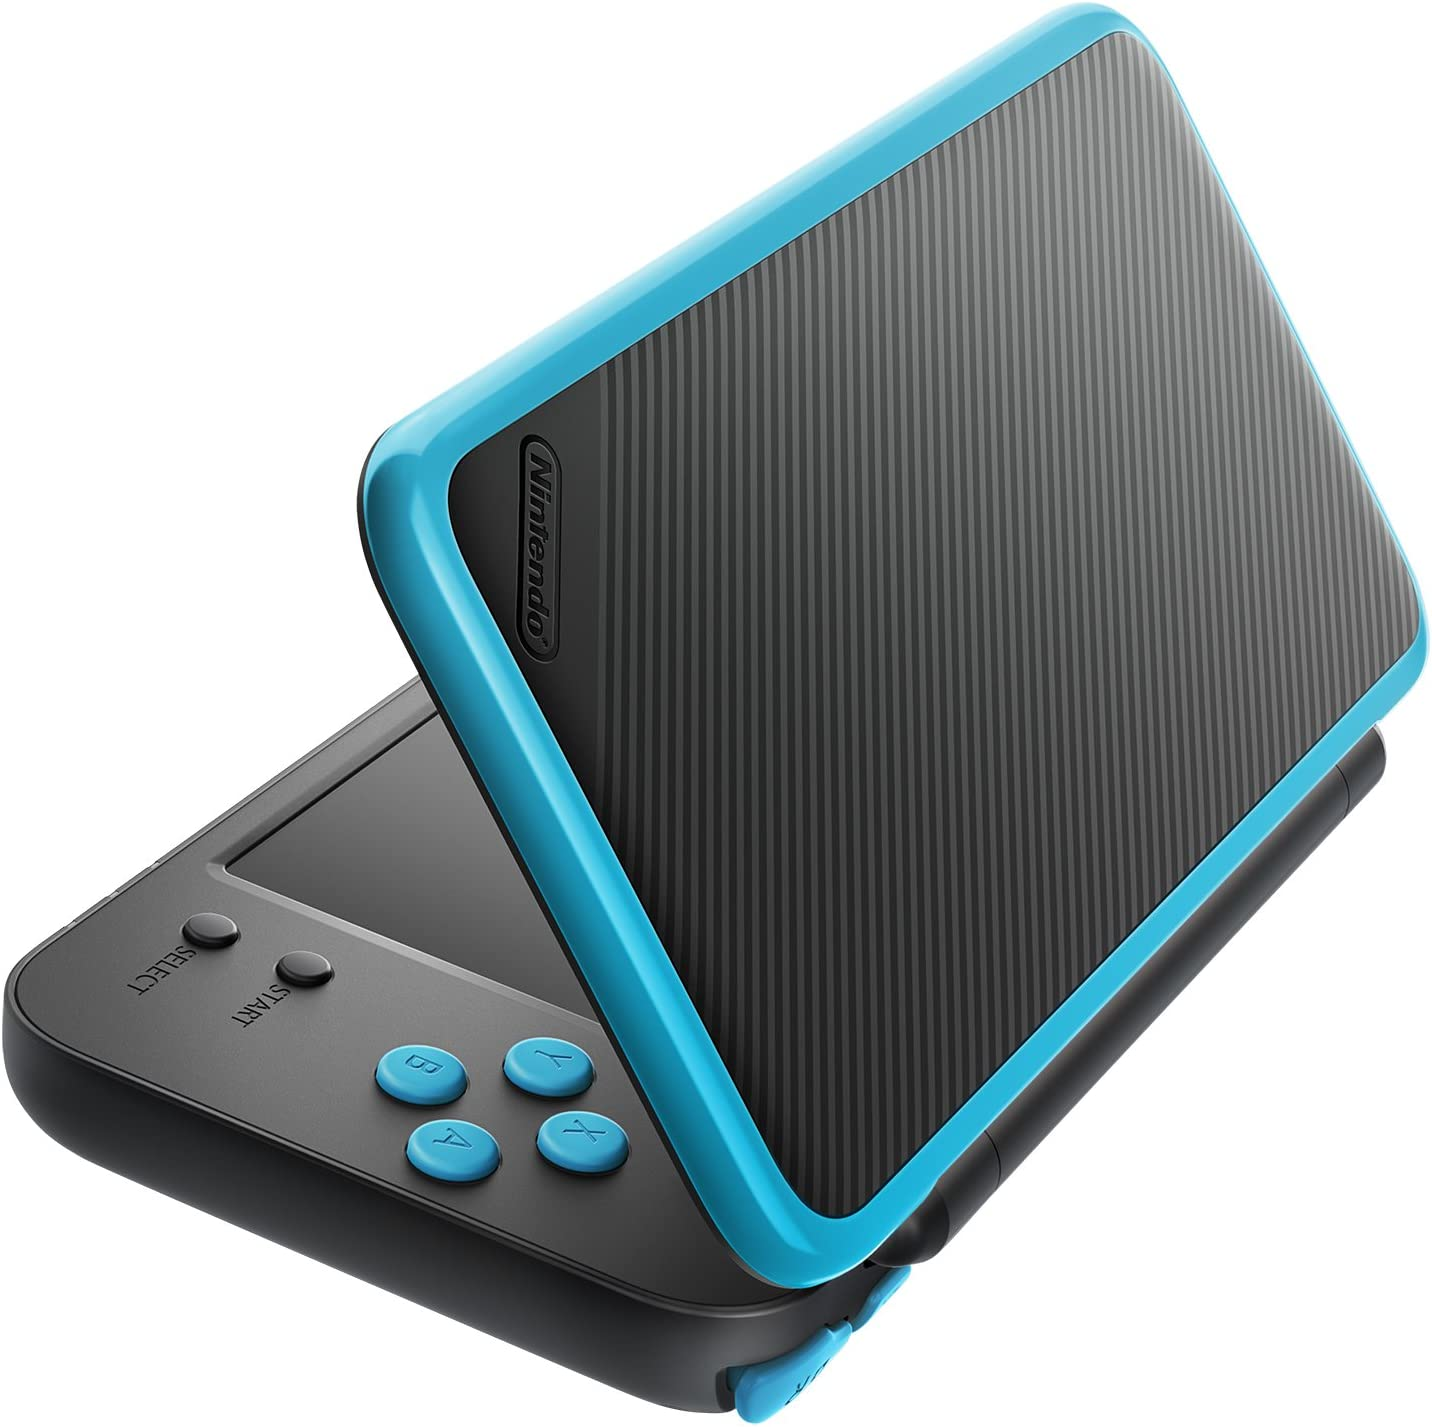 Amazon.com: New Nintendo 2DS XL - Black + Turquoise With ...